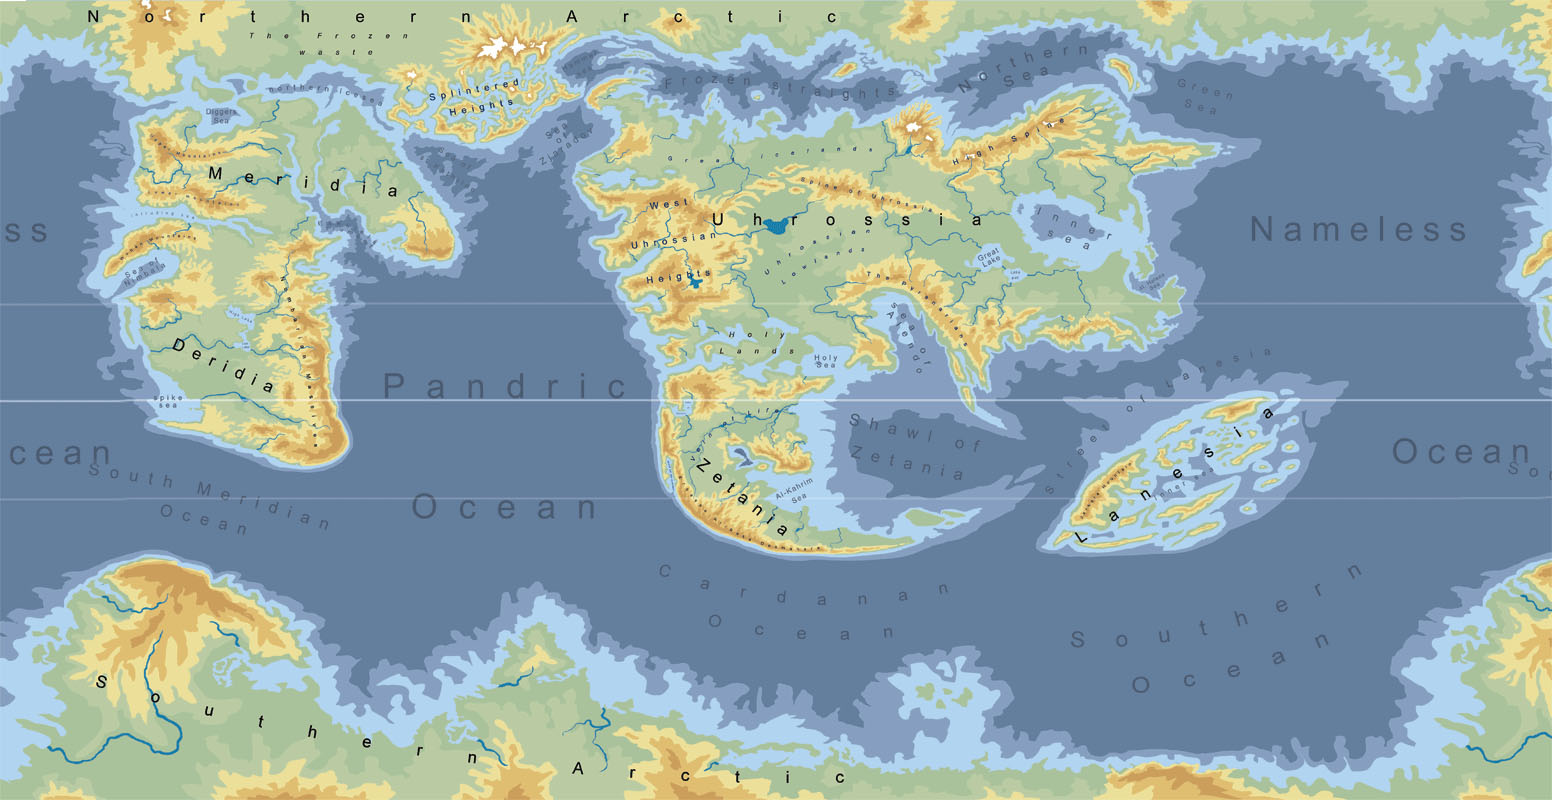 The world of Therras by trs